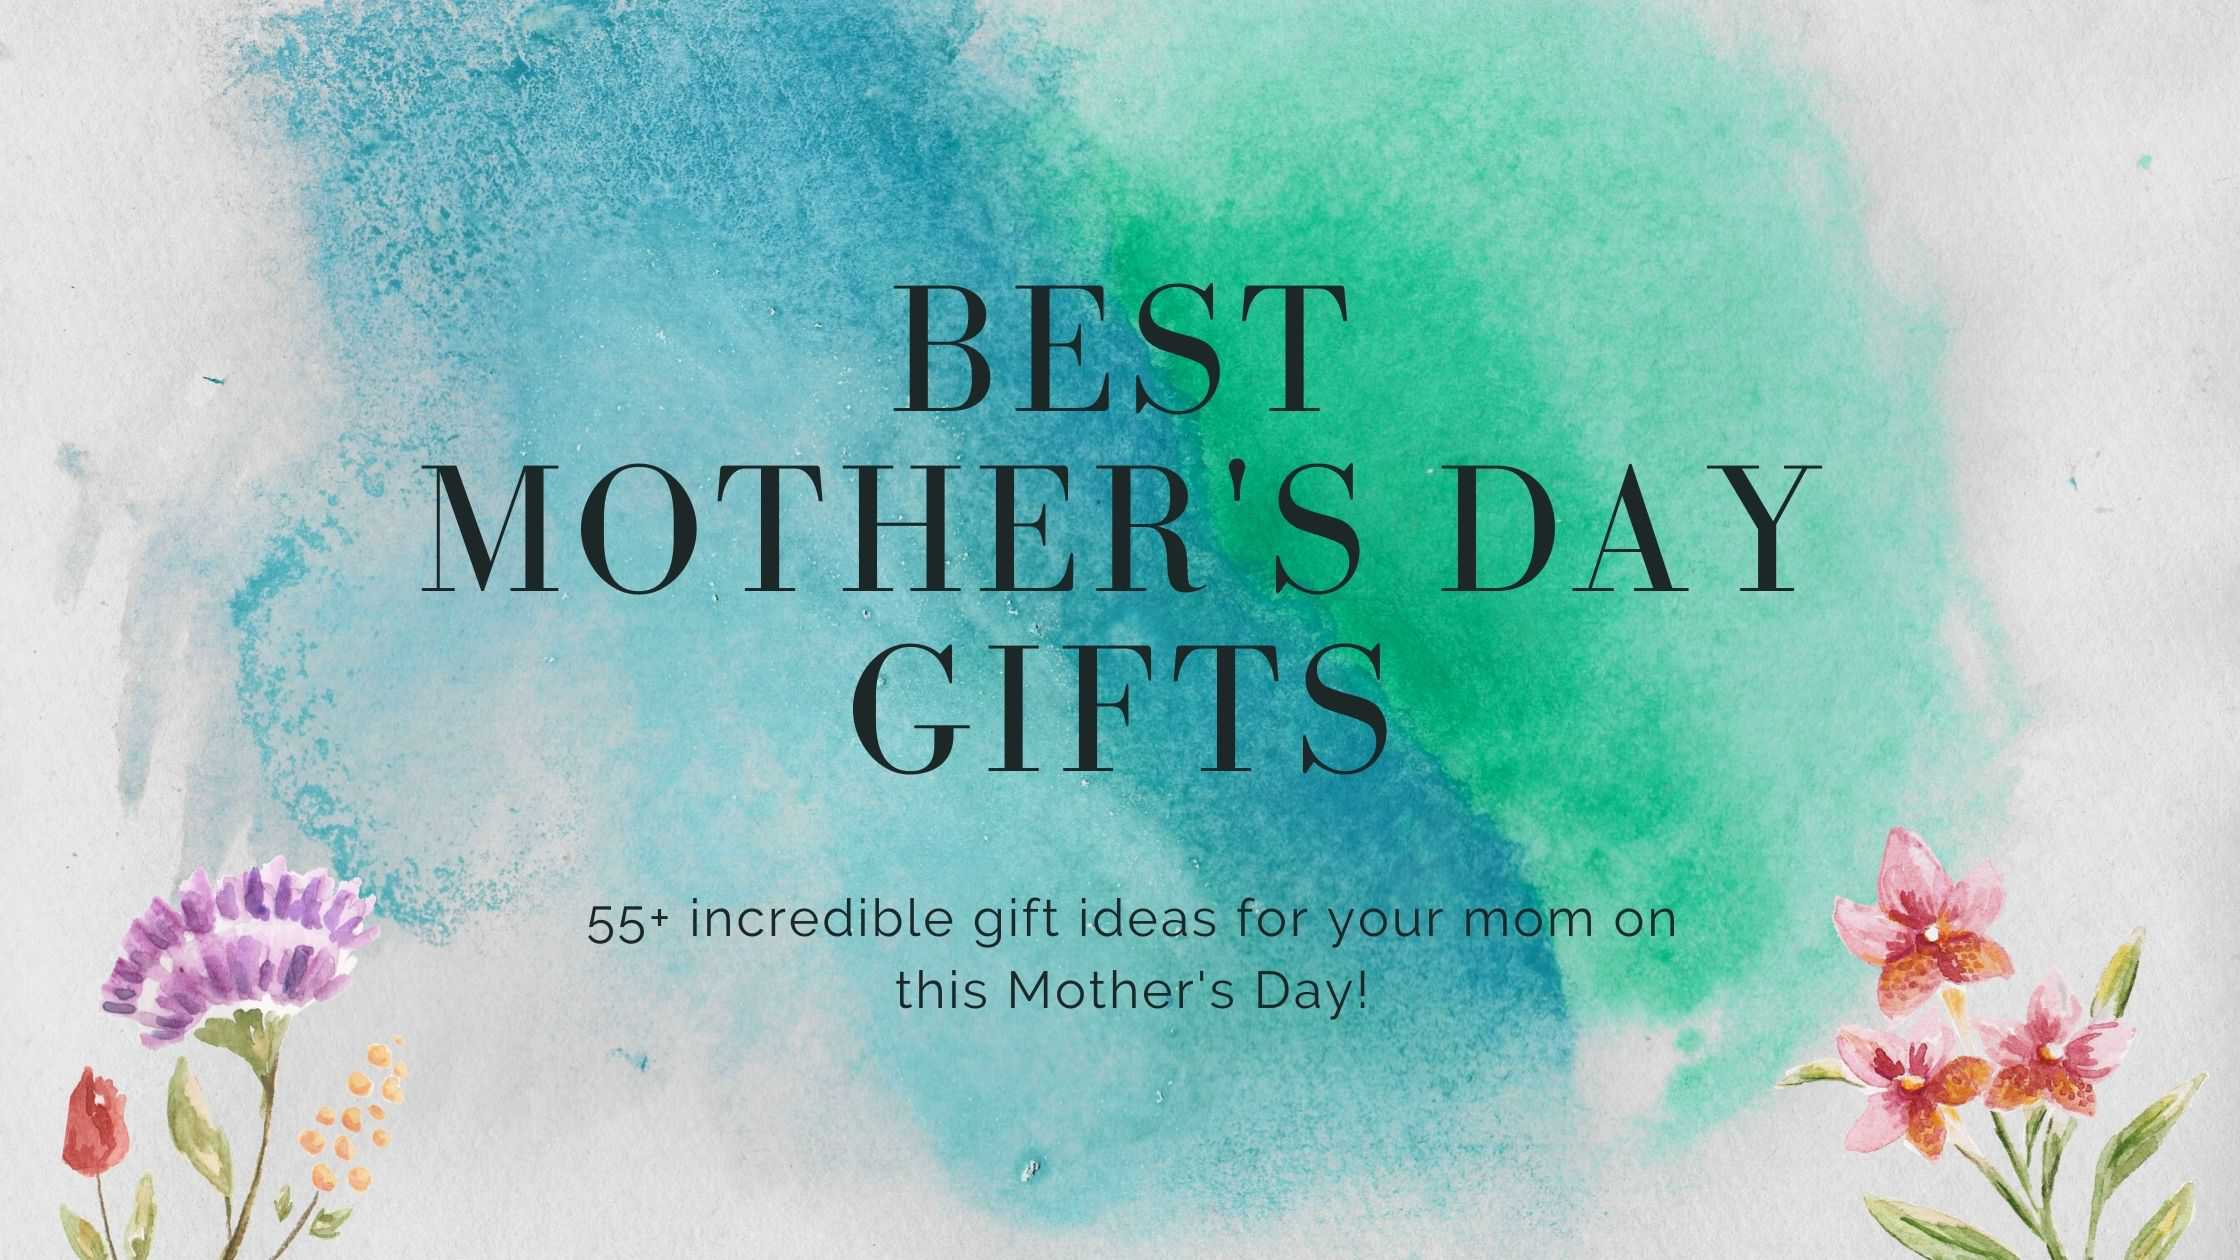 55+ Best Mother's Day Gifts for Mom and Every Special Lady (2021)